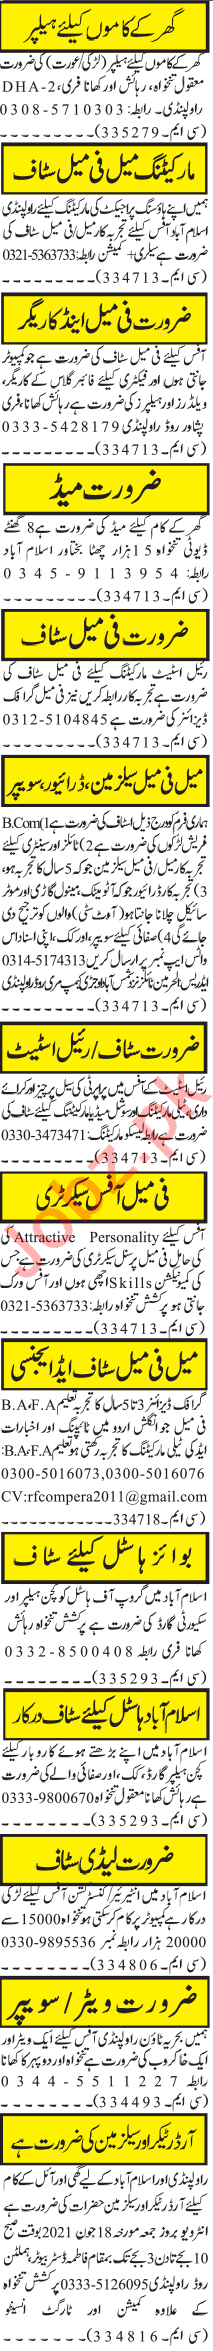 Jang Sunday Classified Ads 13 June 2021 for General Staff